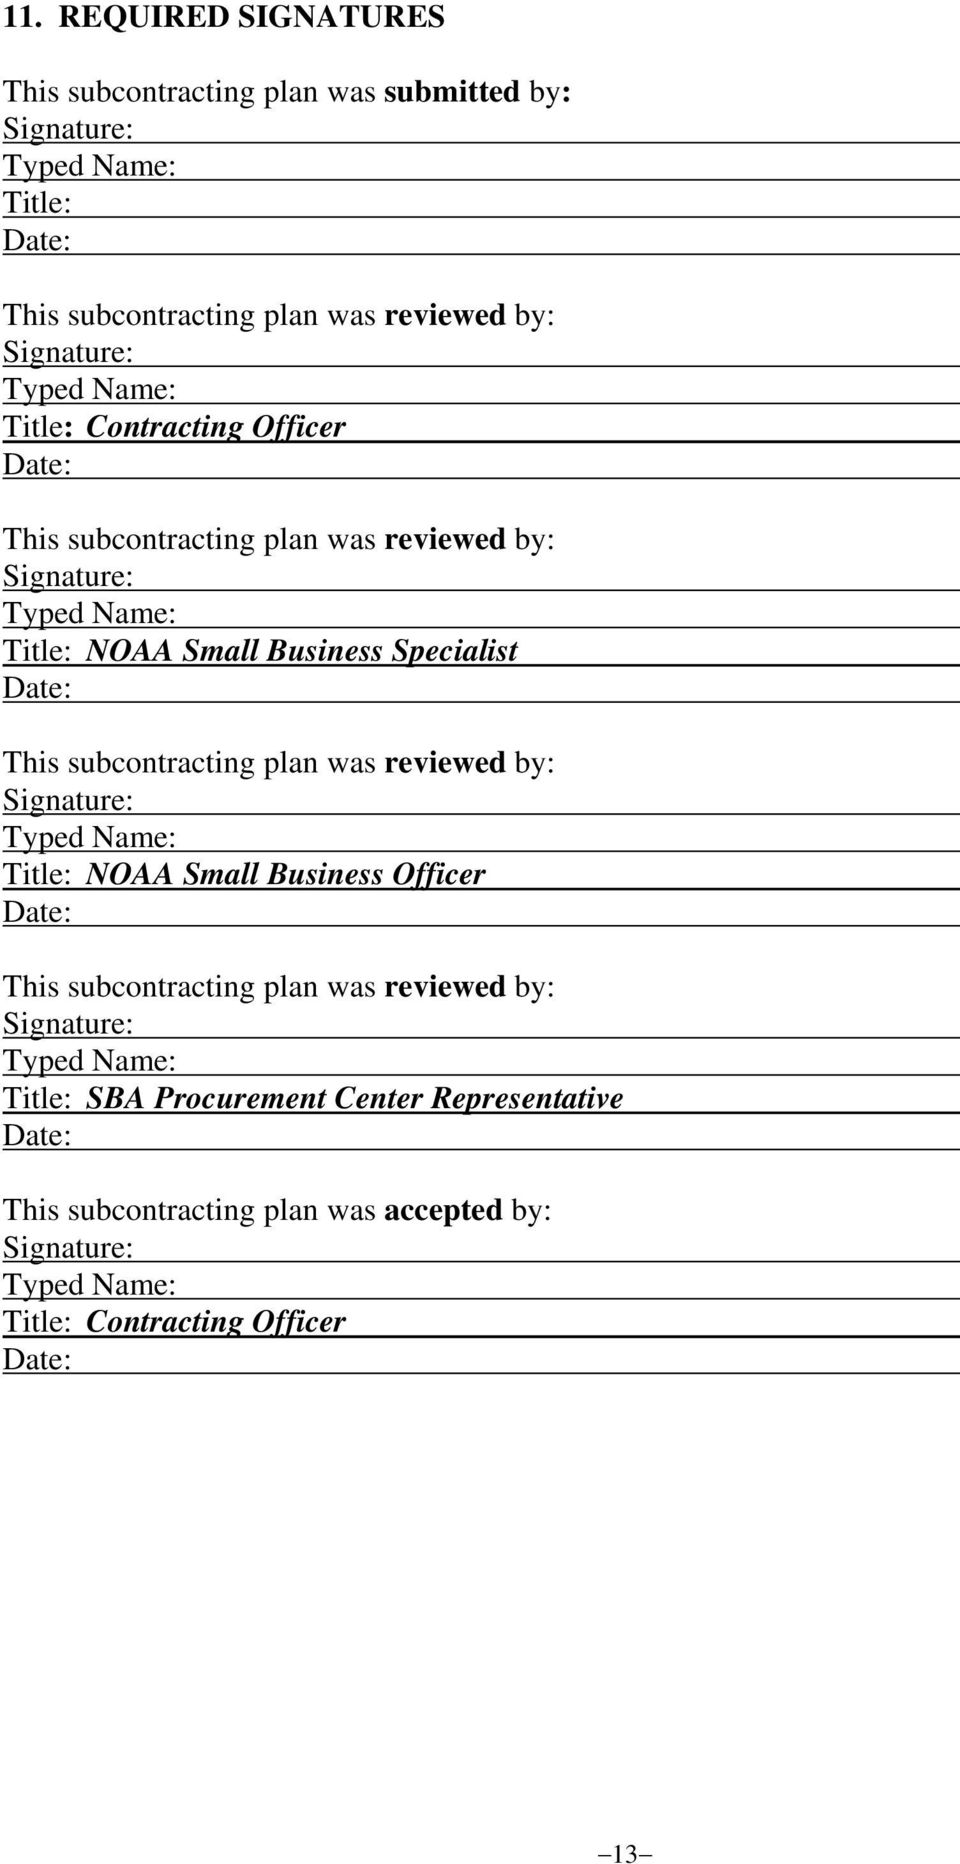 subcontracting plan was reviewed by: Signature: Typed Name: Title: AA Small Business Officer Date: This subcontracting plan was reviewed by: Signature: